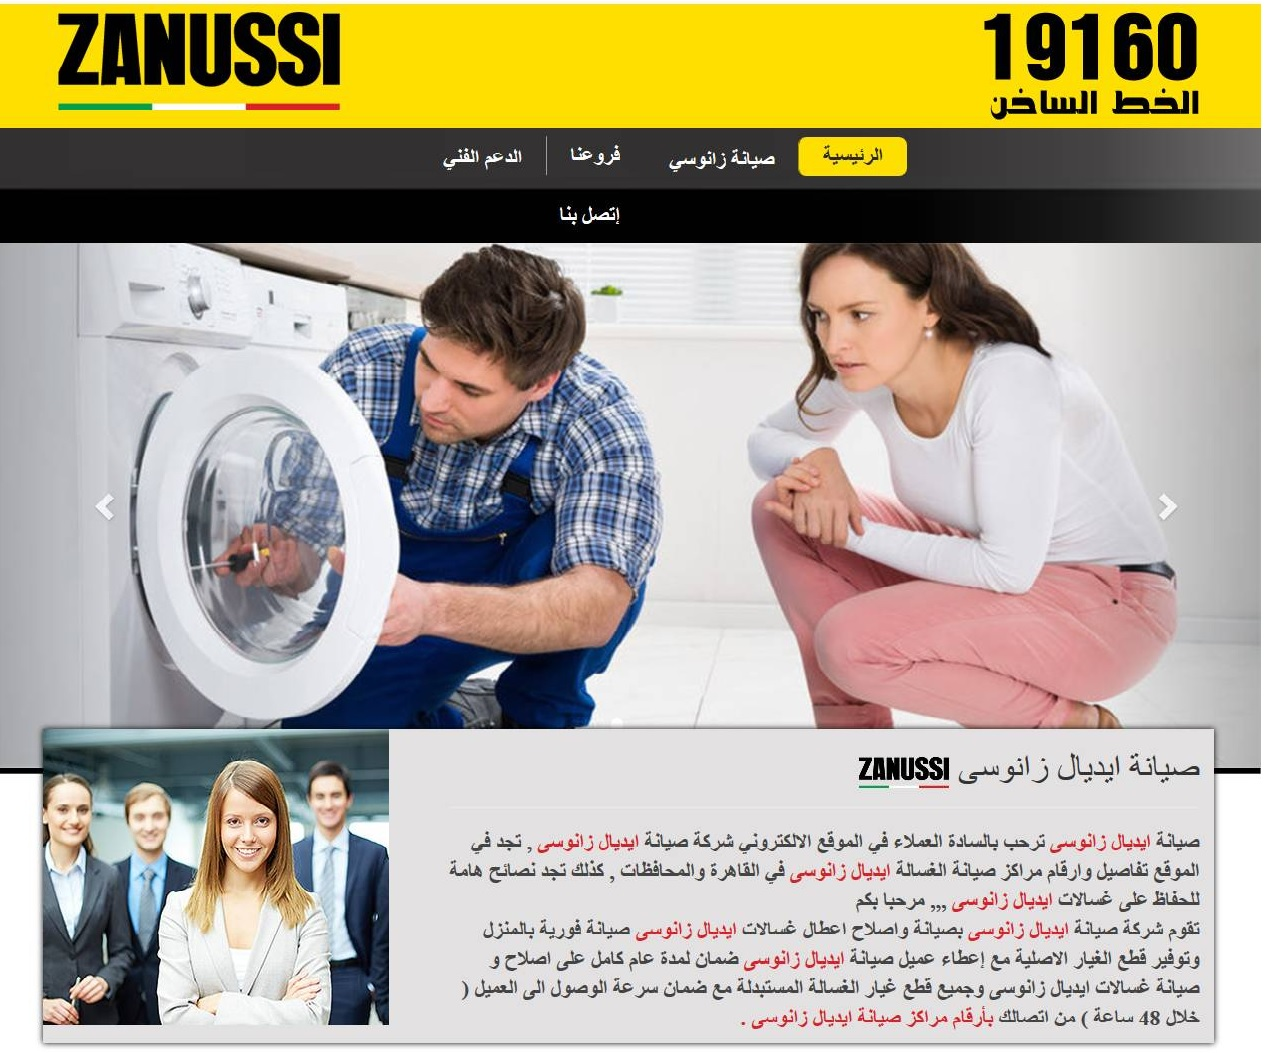 cybersquatting-nom-domaine-zanussi19160-point-com-2017